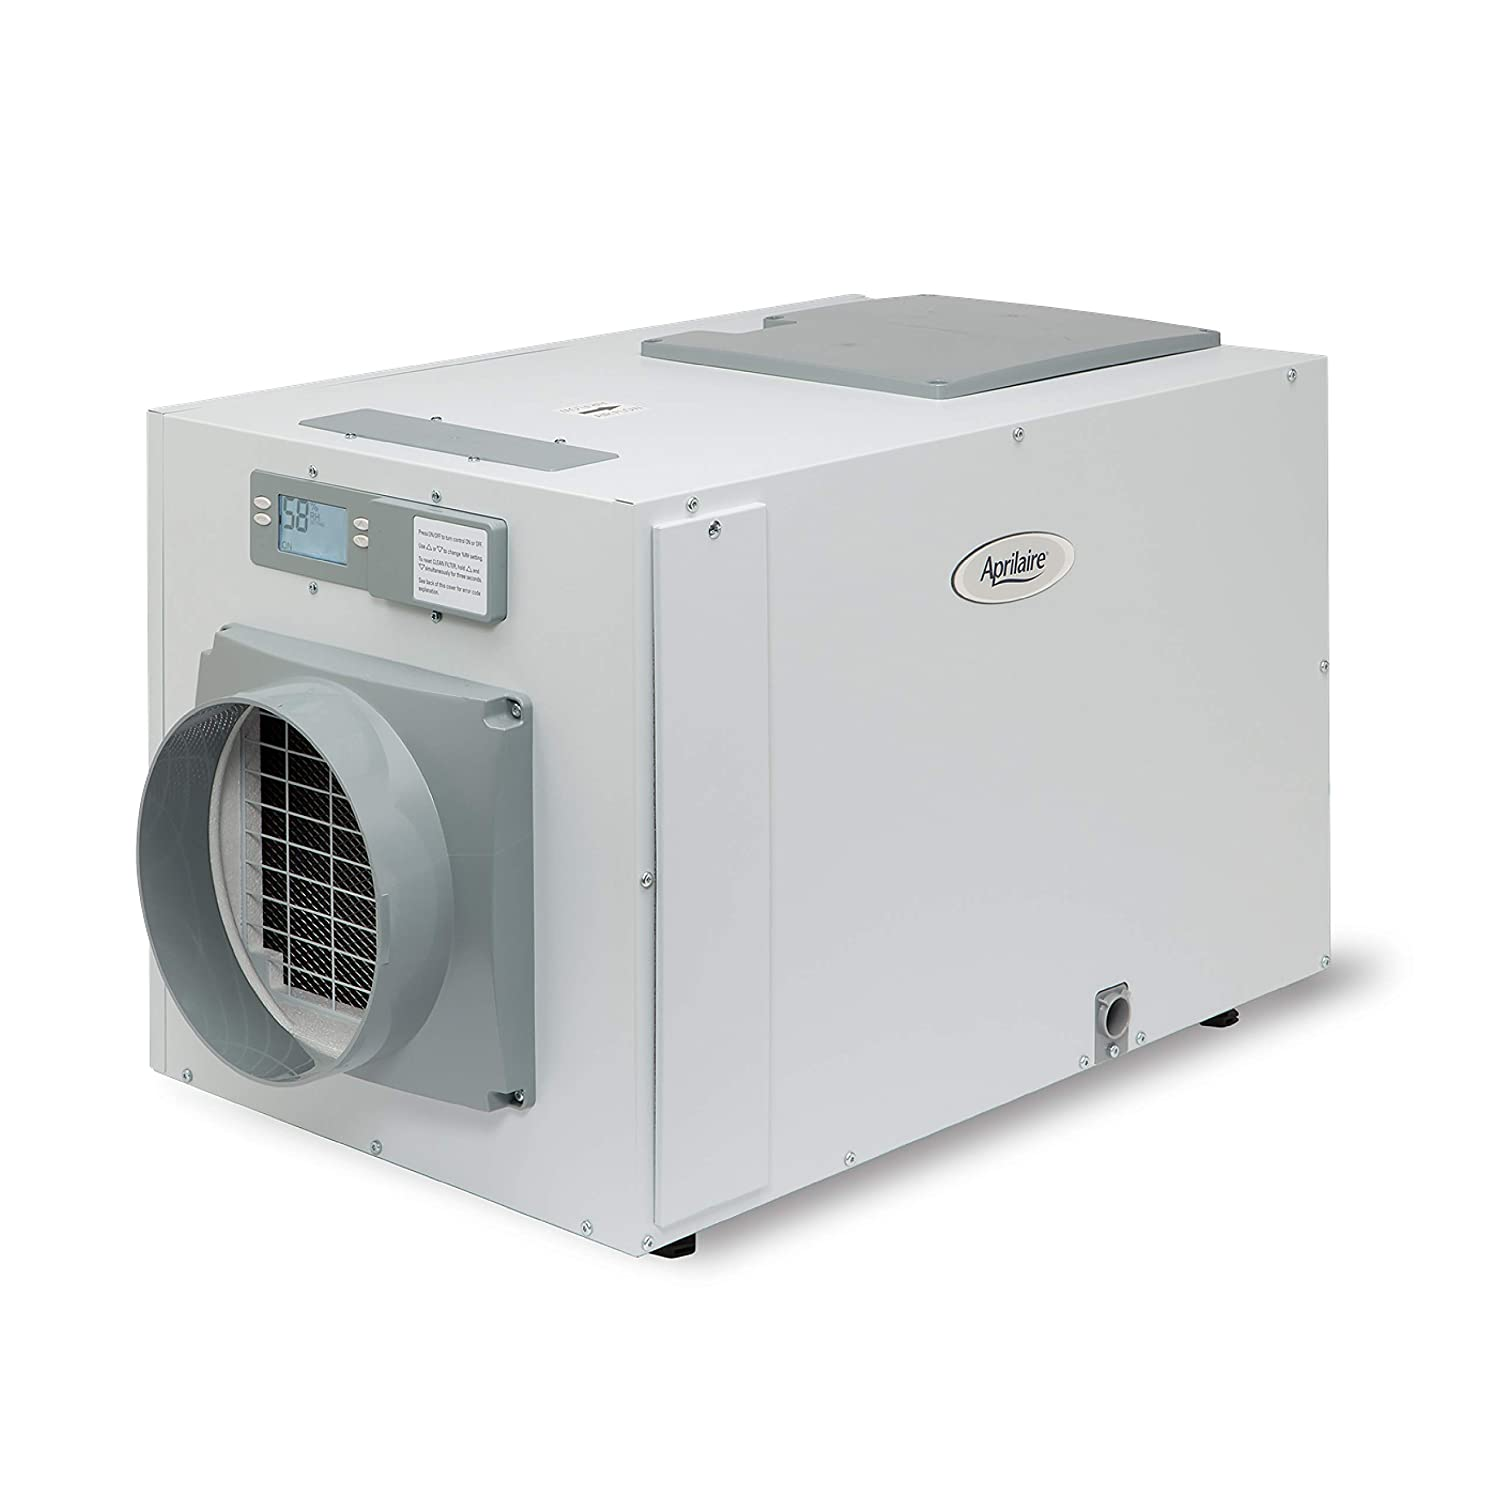 Aprilaire 1850 Whole Home Pro Dehumidifier, 95 Pint Dehumidifier for Homes up to 3000 sq. ft. 1850A